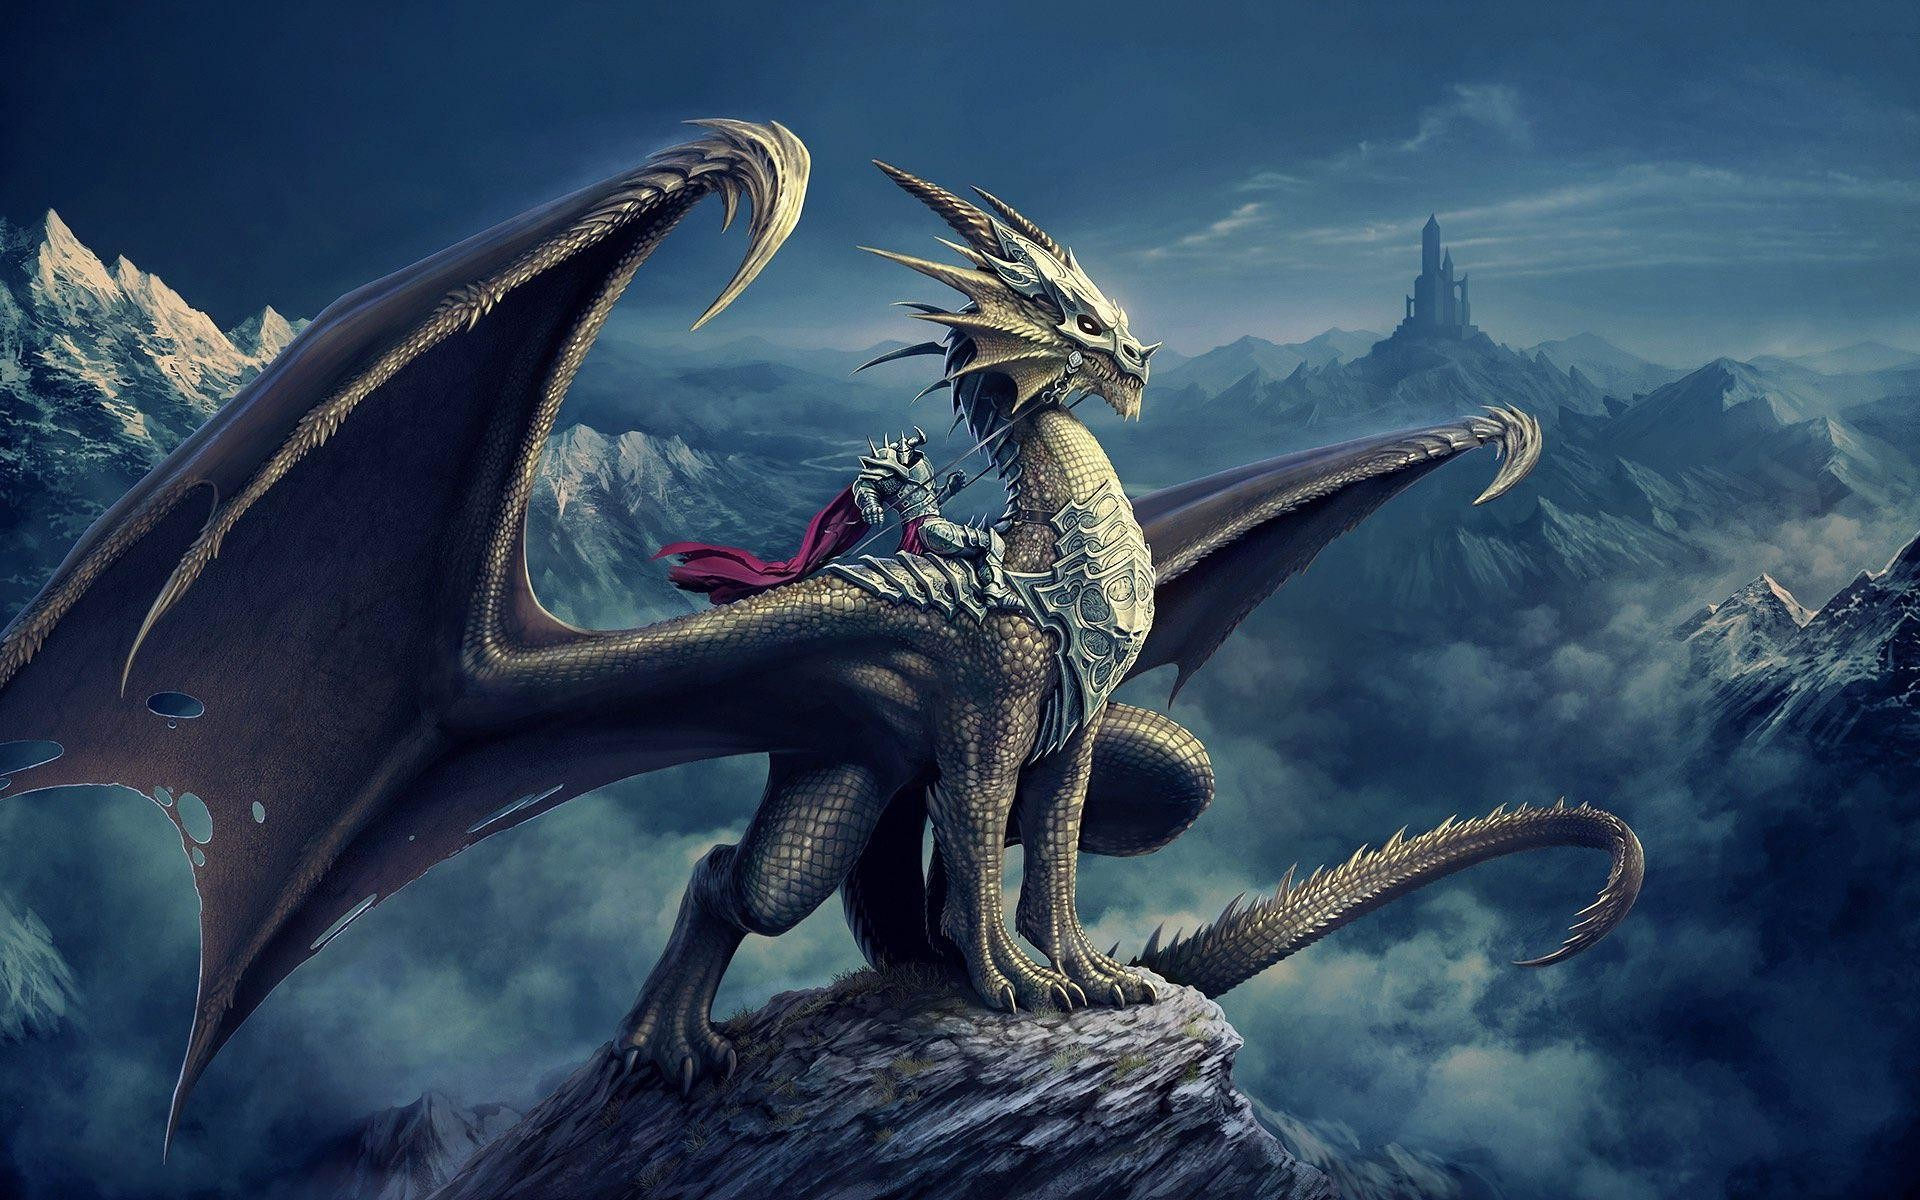 Blue Dragon Wallpaper Hd 70 Images